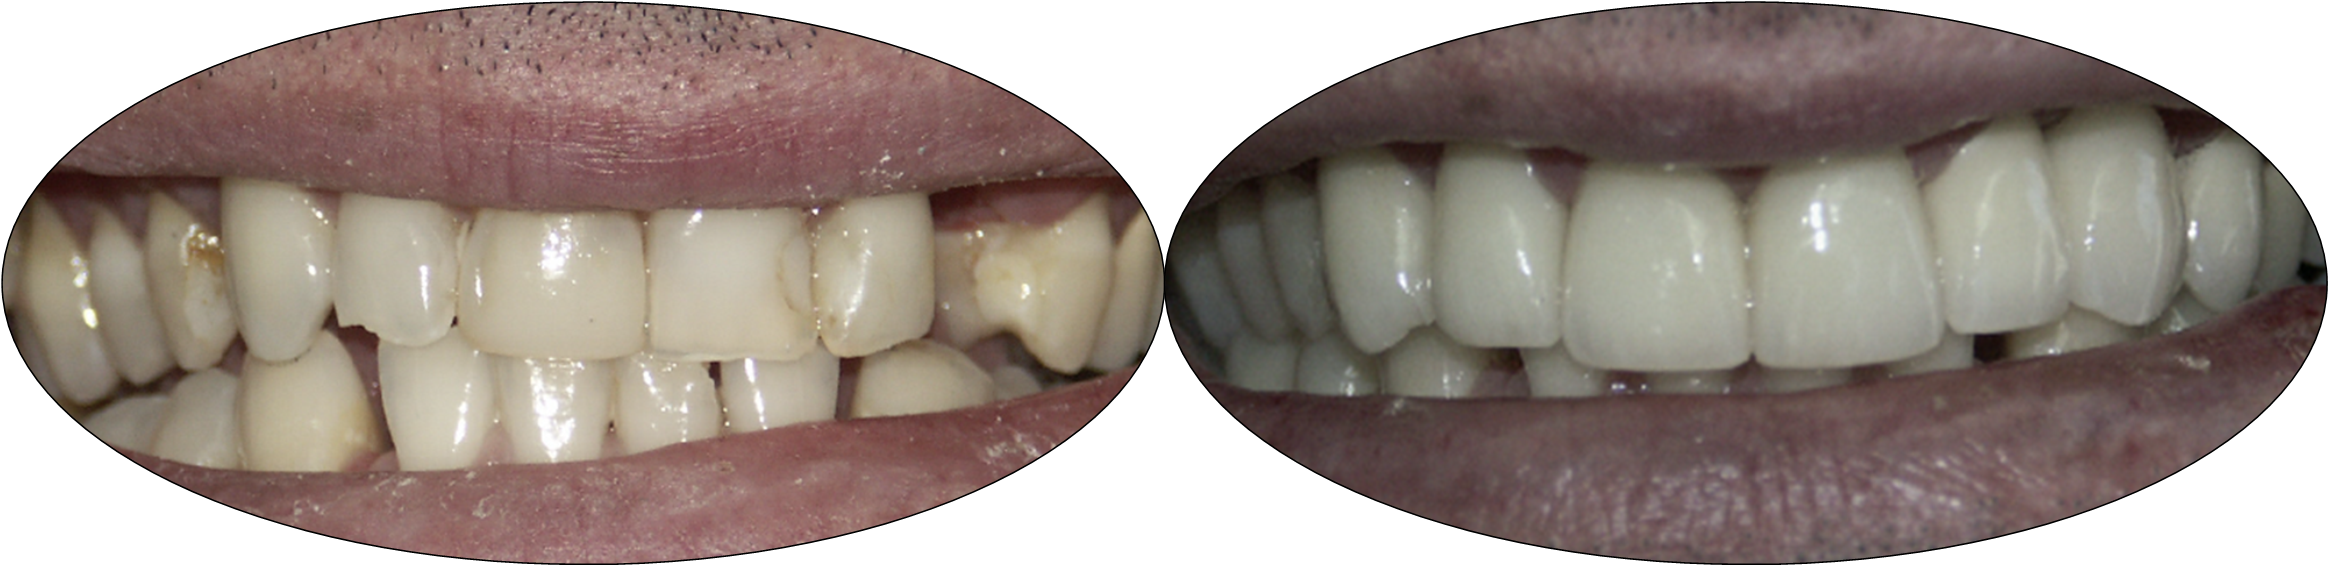 Before and after smile photos of patient with porcelain crowns